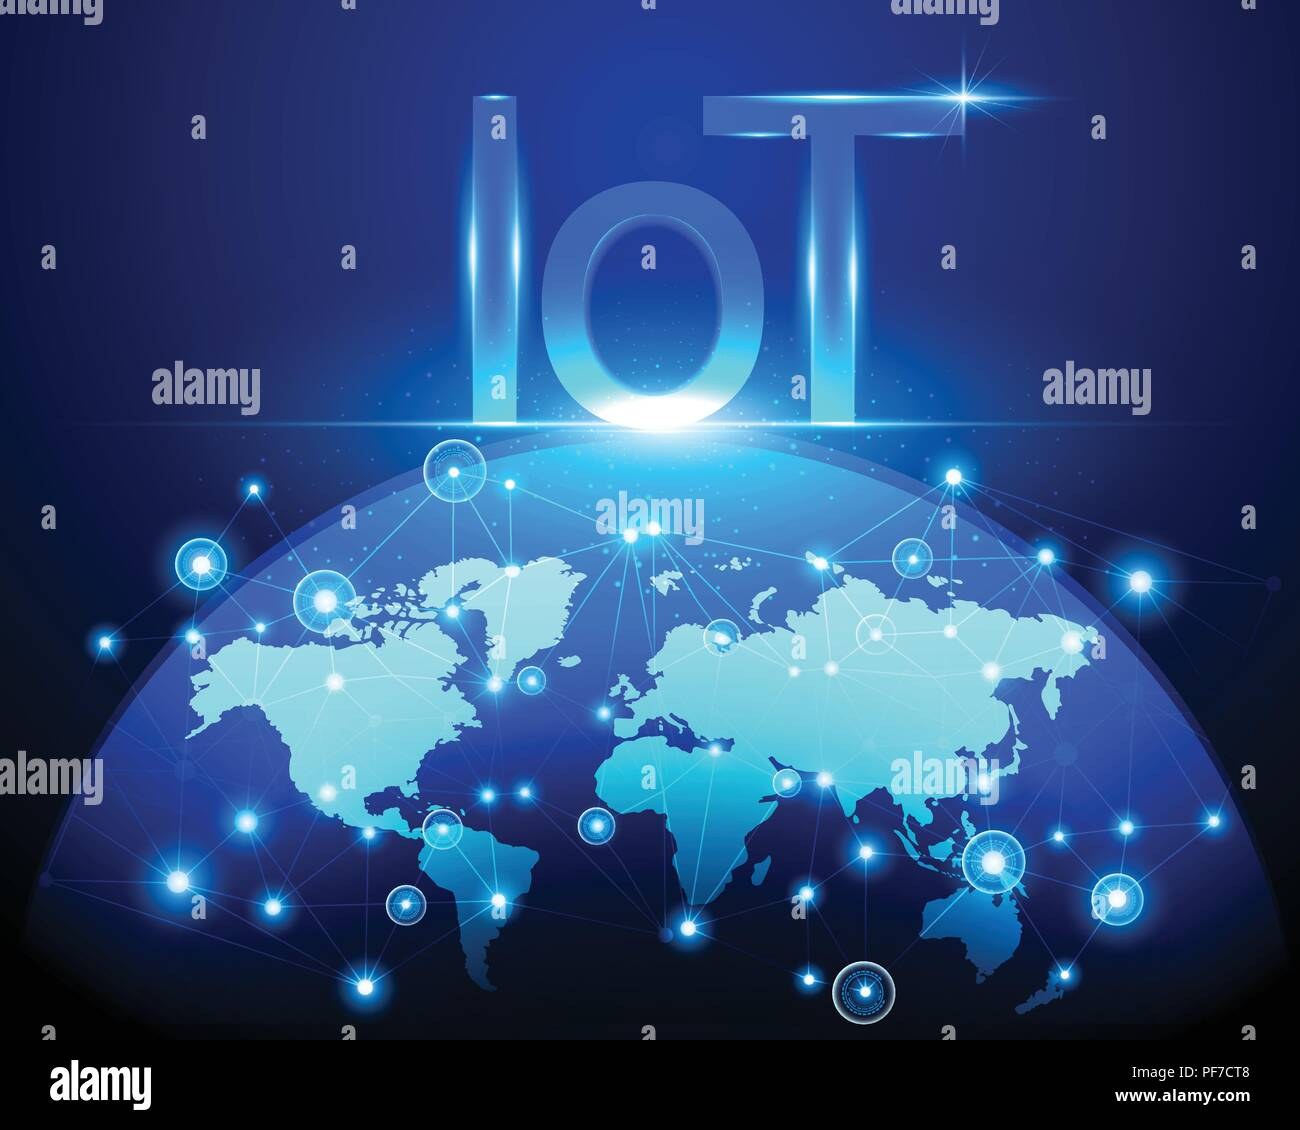 Internet of things (IOT) technology and World map cyber data internet network connection business concept.Vector illustration EPS10 - Stock Image